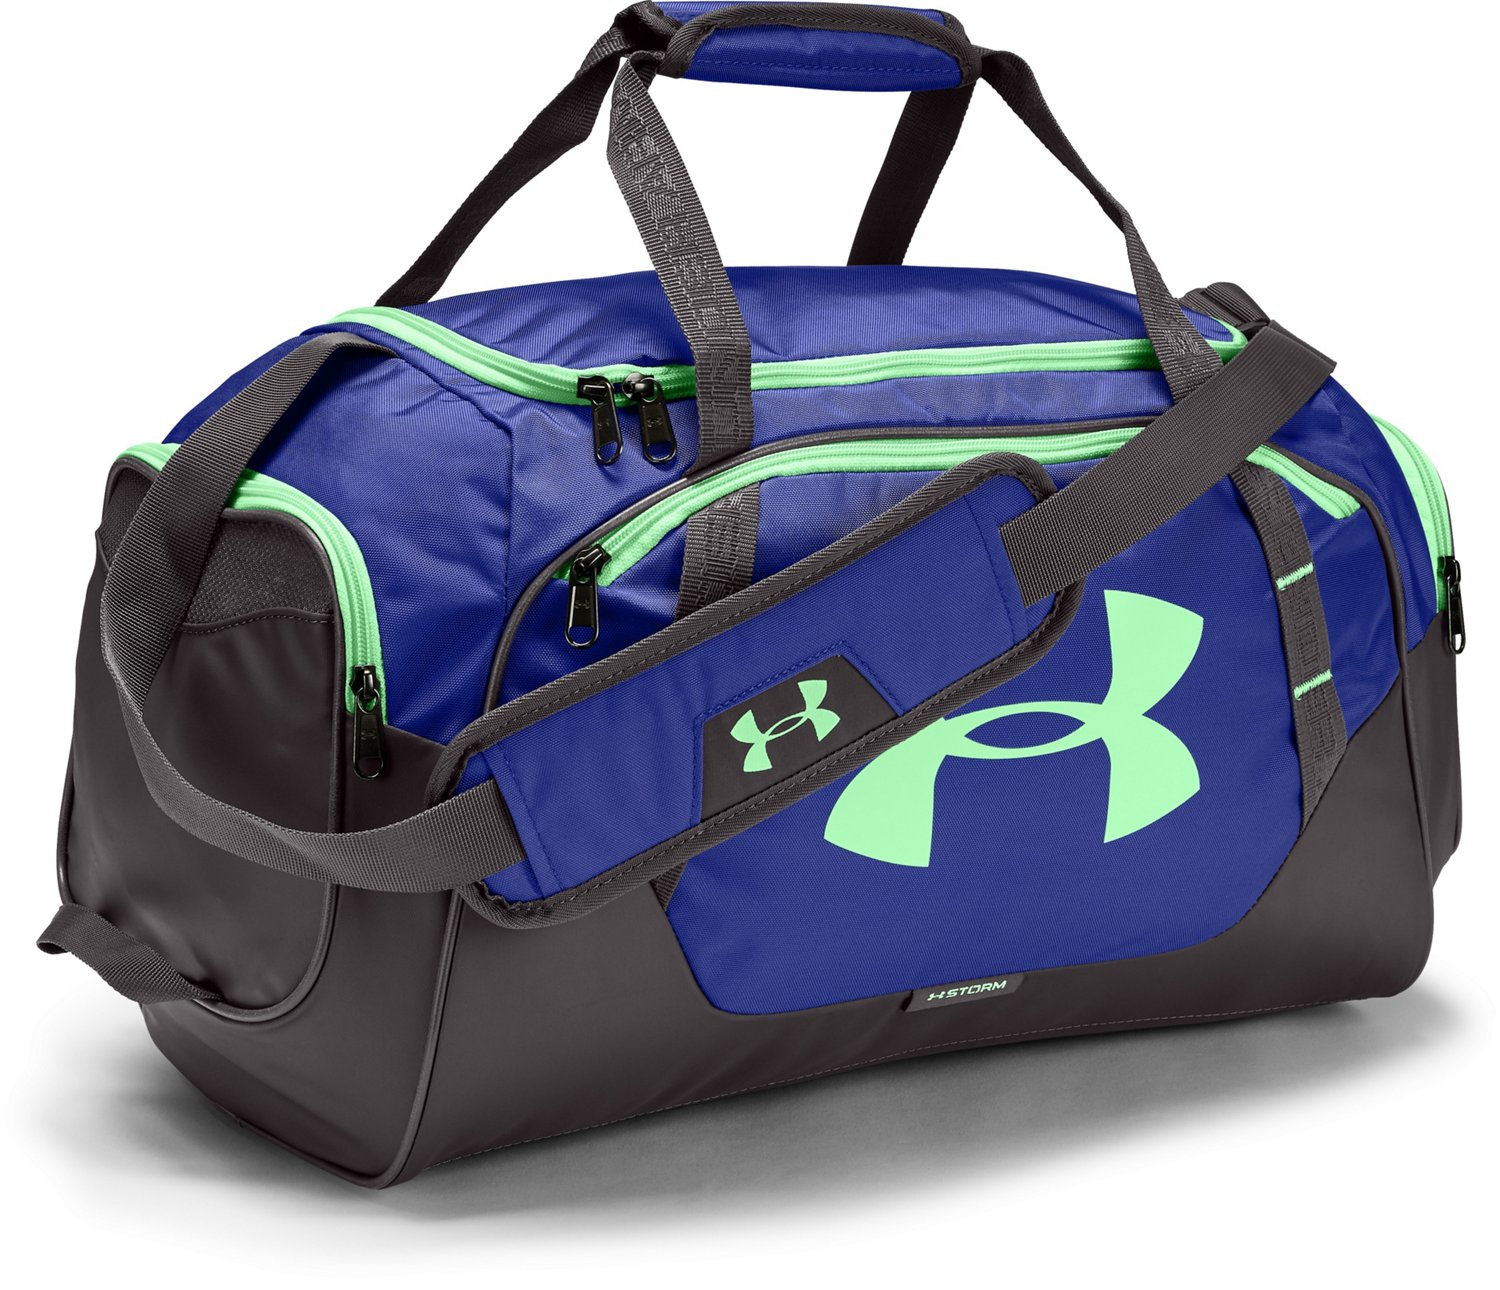 787d0f8507 Display product reviews for Under Armour Undeniable II Small Duffel Bag